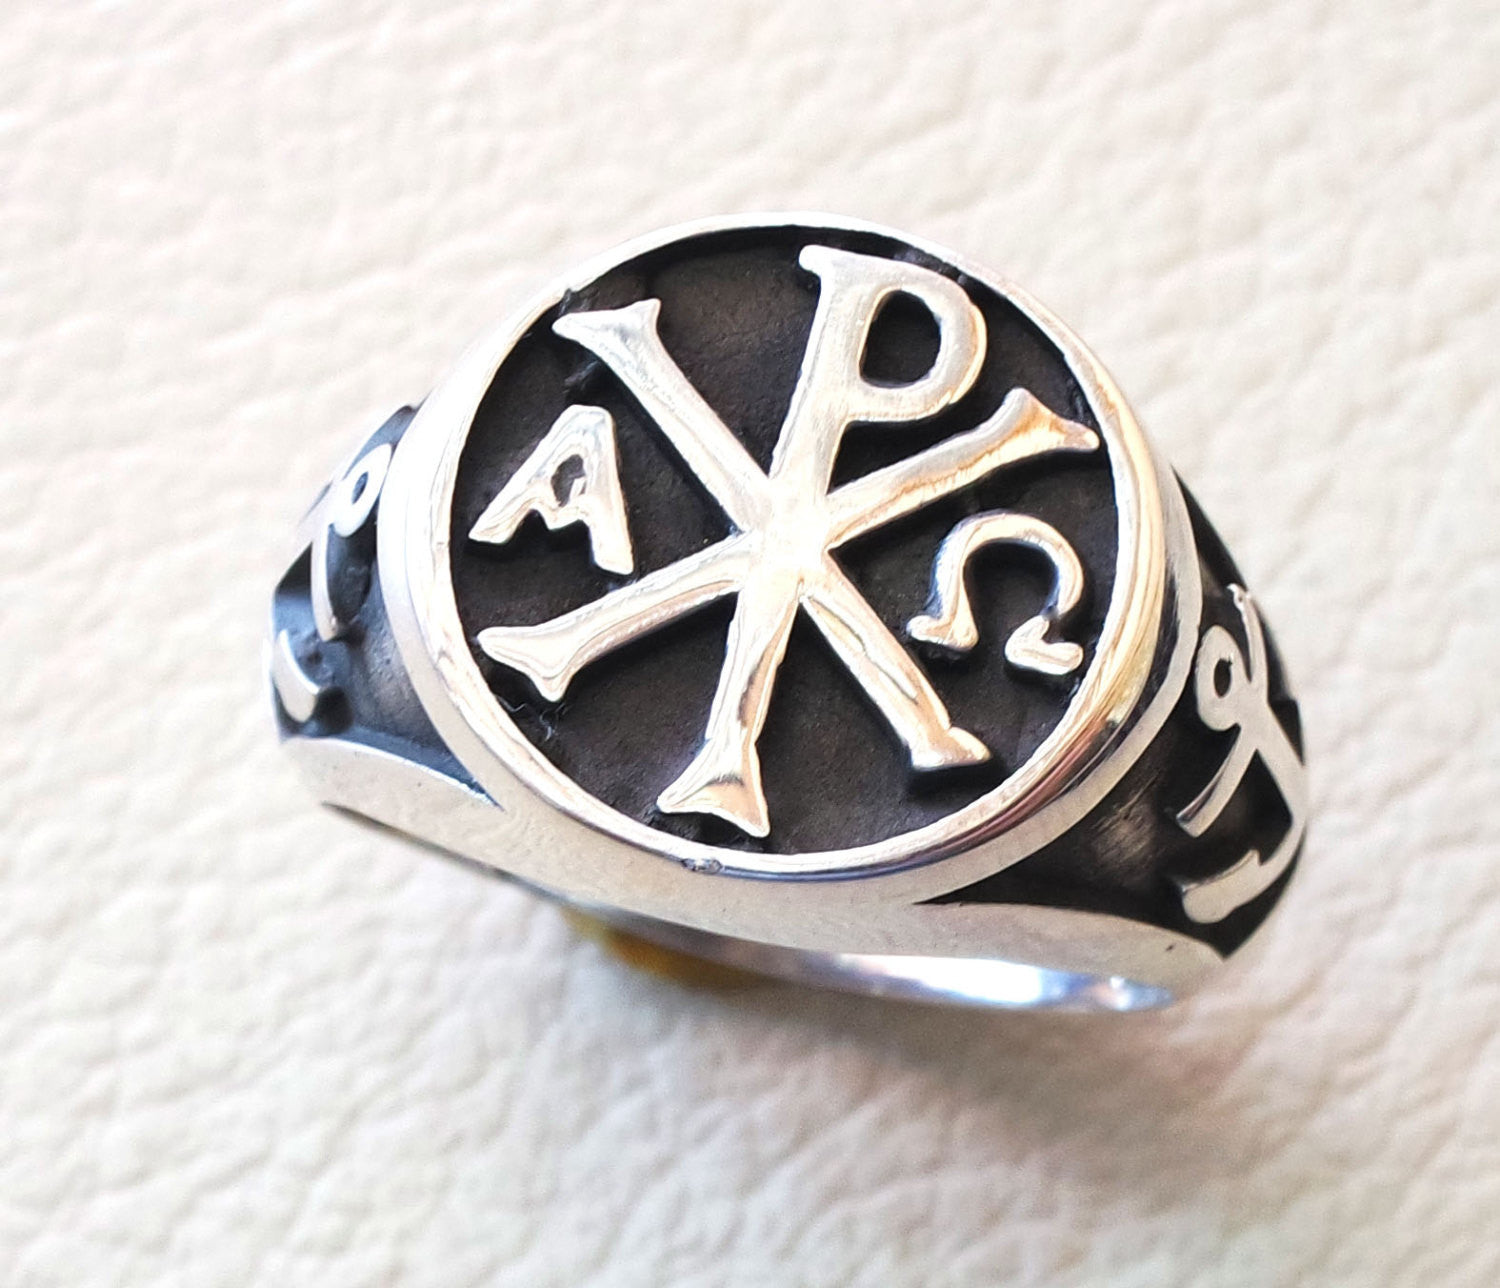 Chi Rho anchor on the sides cross christ christian symbol sterling silver 925 heavy man ring jewelry fast shipping round  shape all sizes